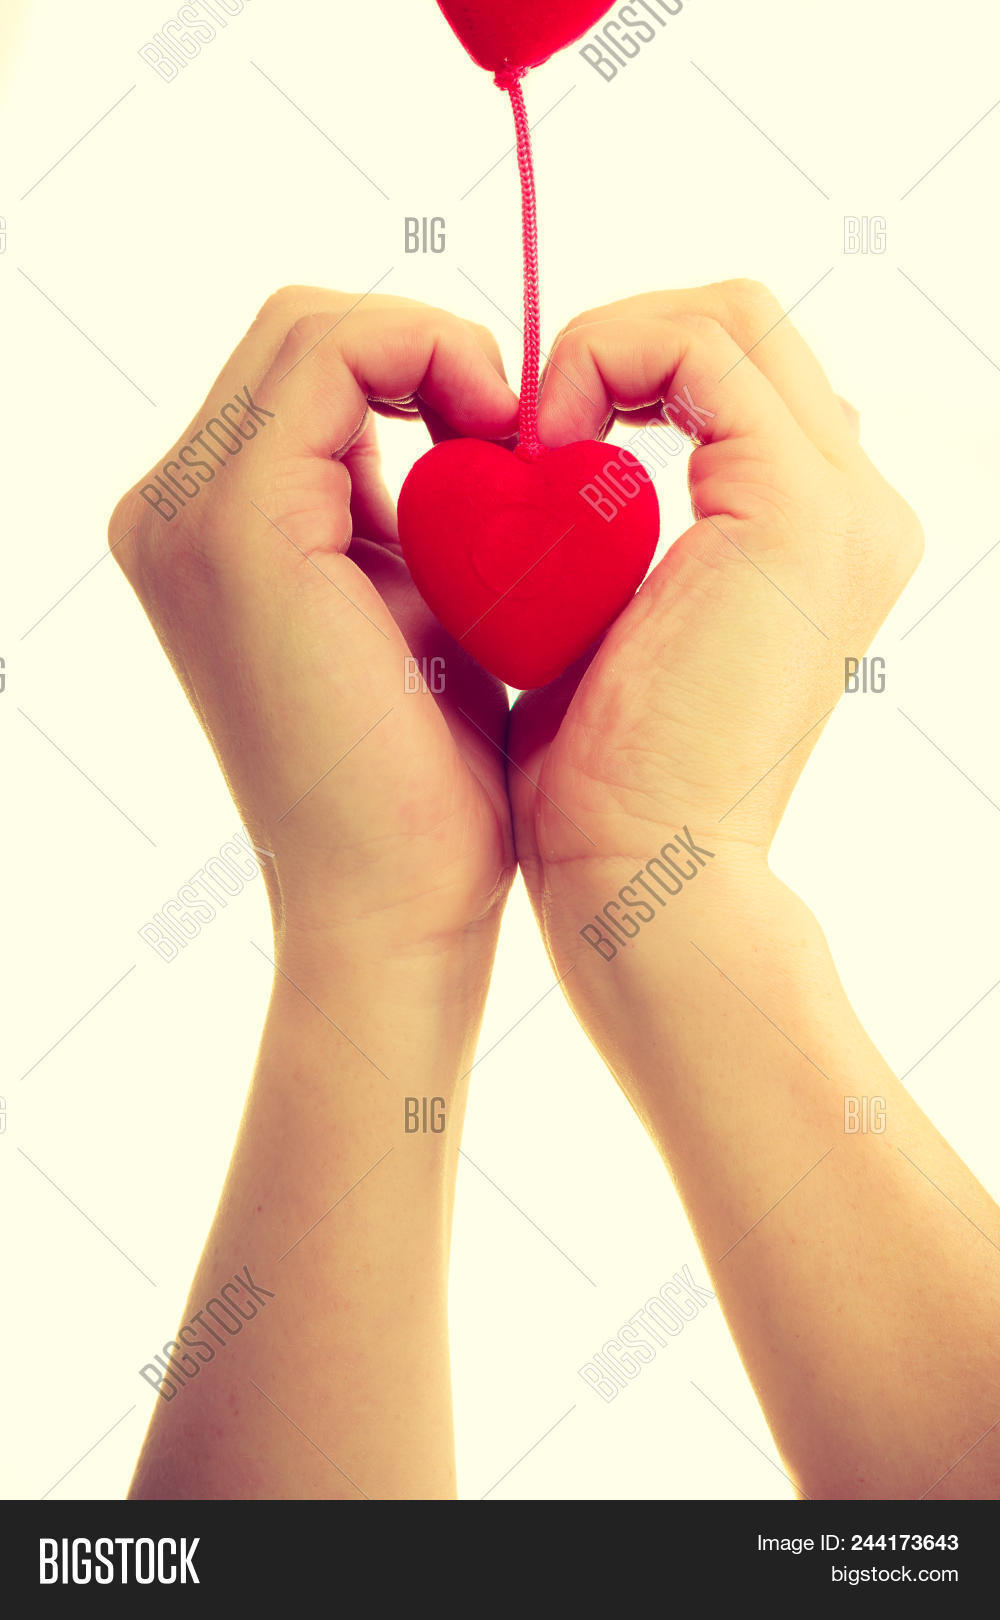 Love Help Smoothy Image Photo Free Trial Bigstock